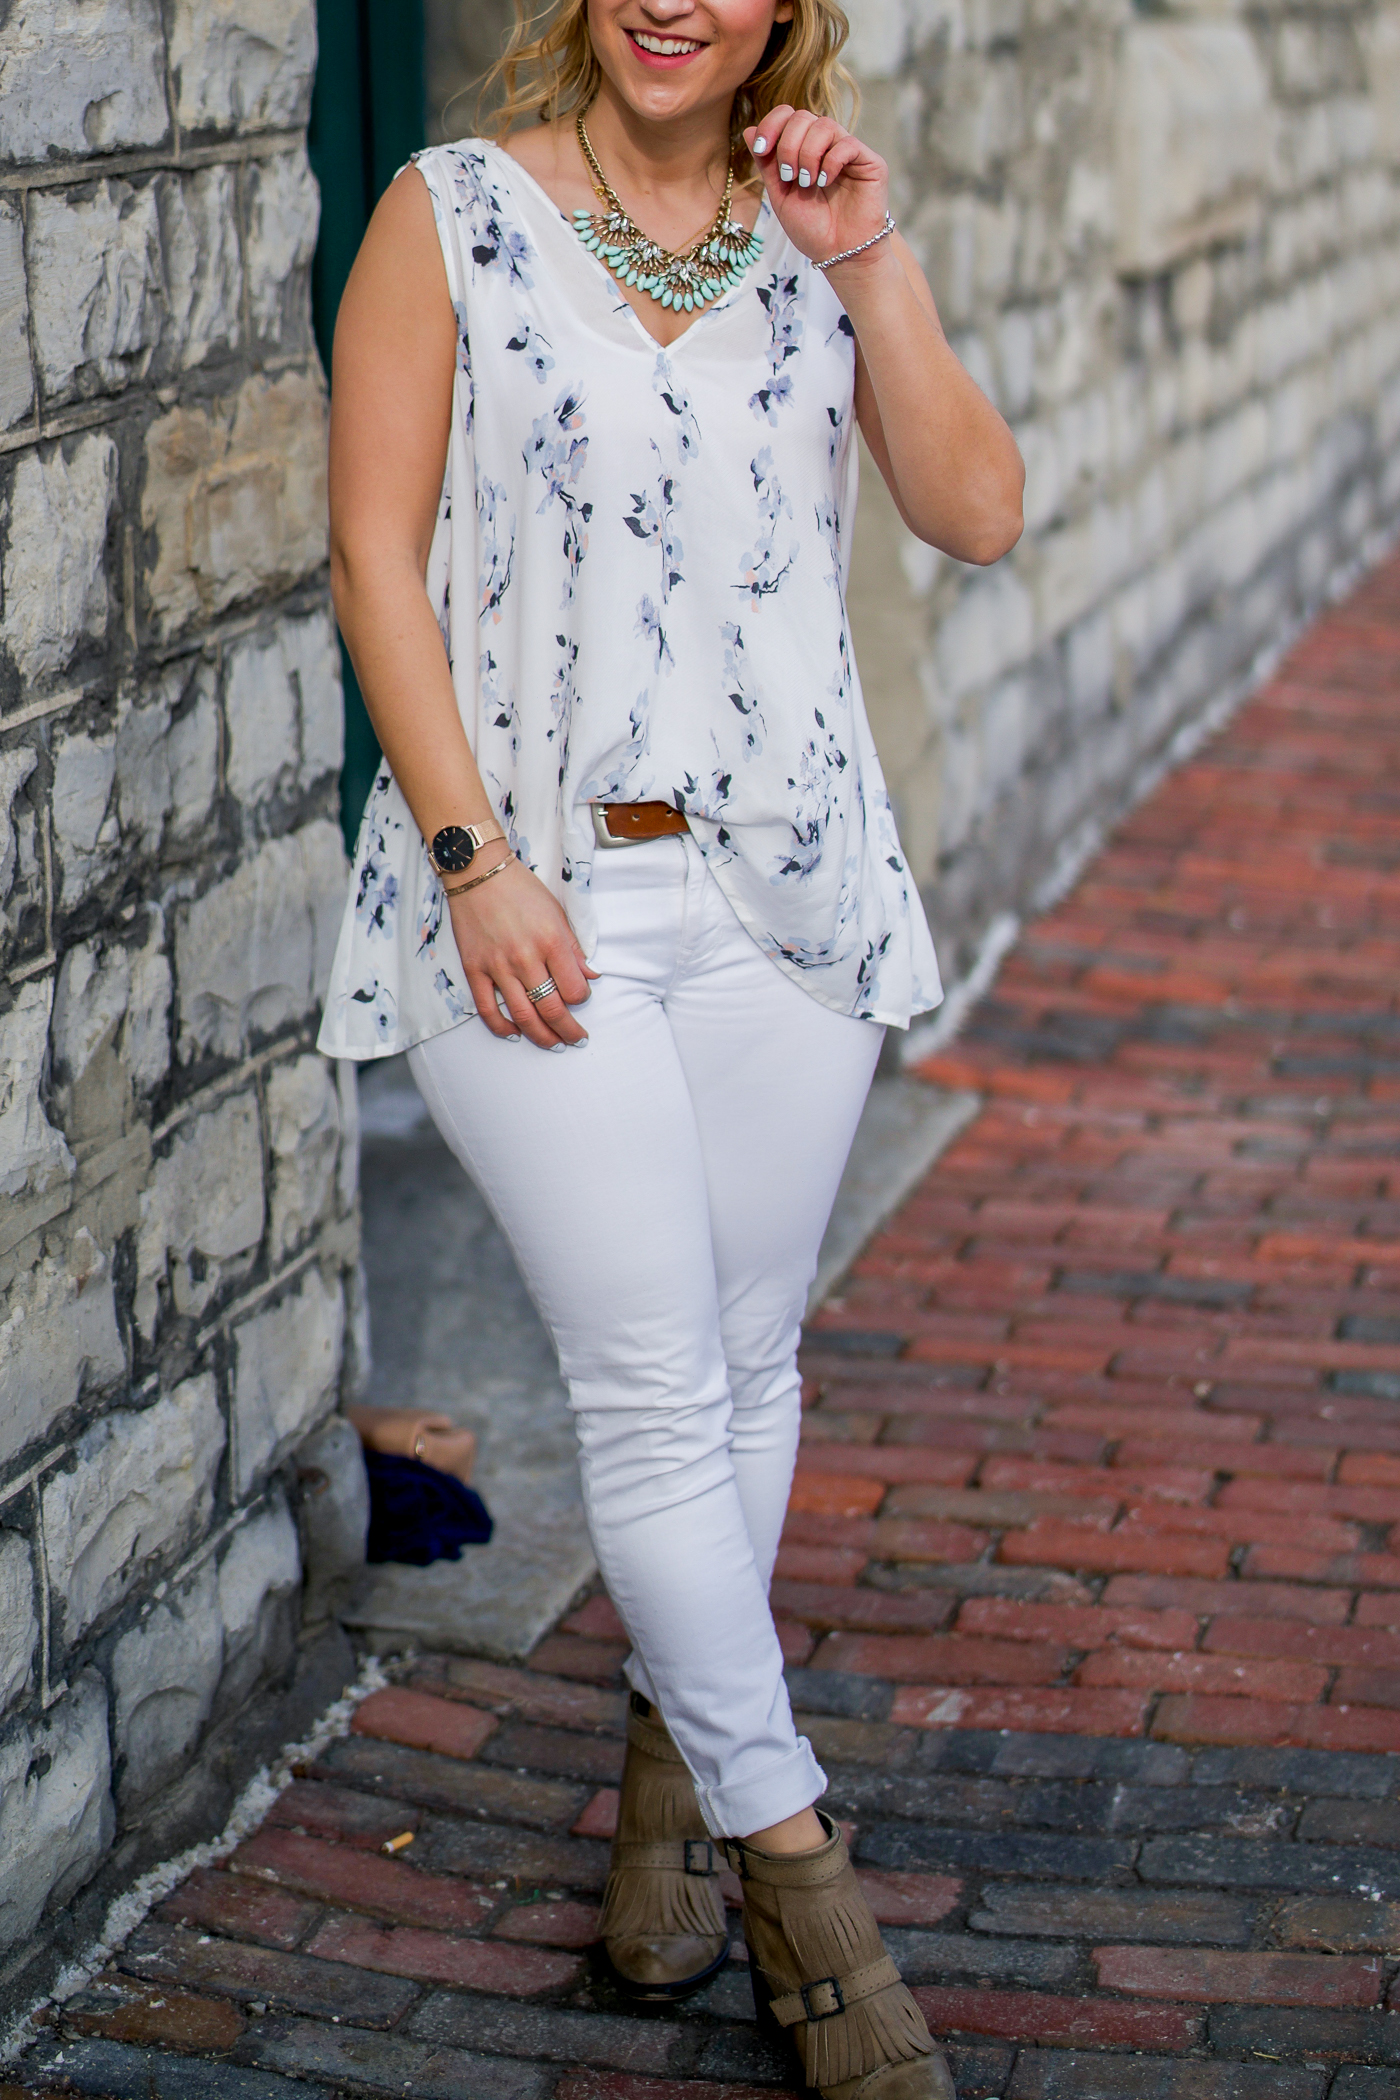 Spring outfit idea - wear white jeans with a white floral top